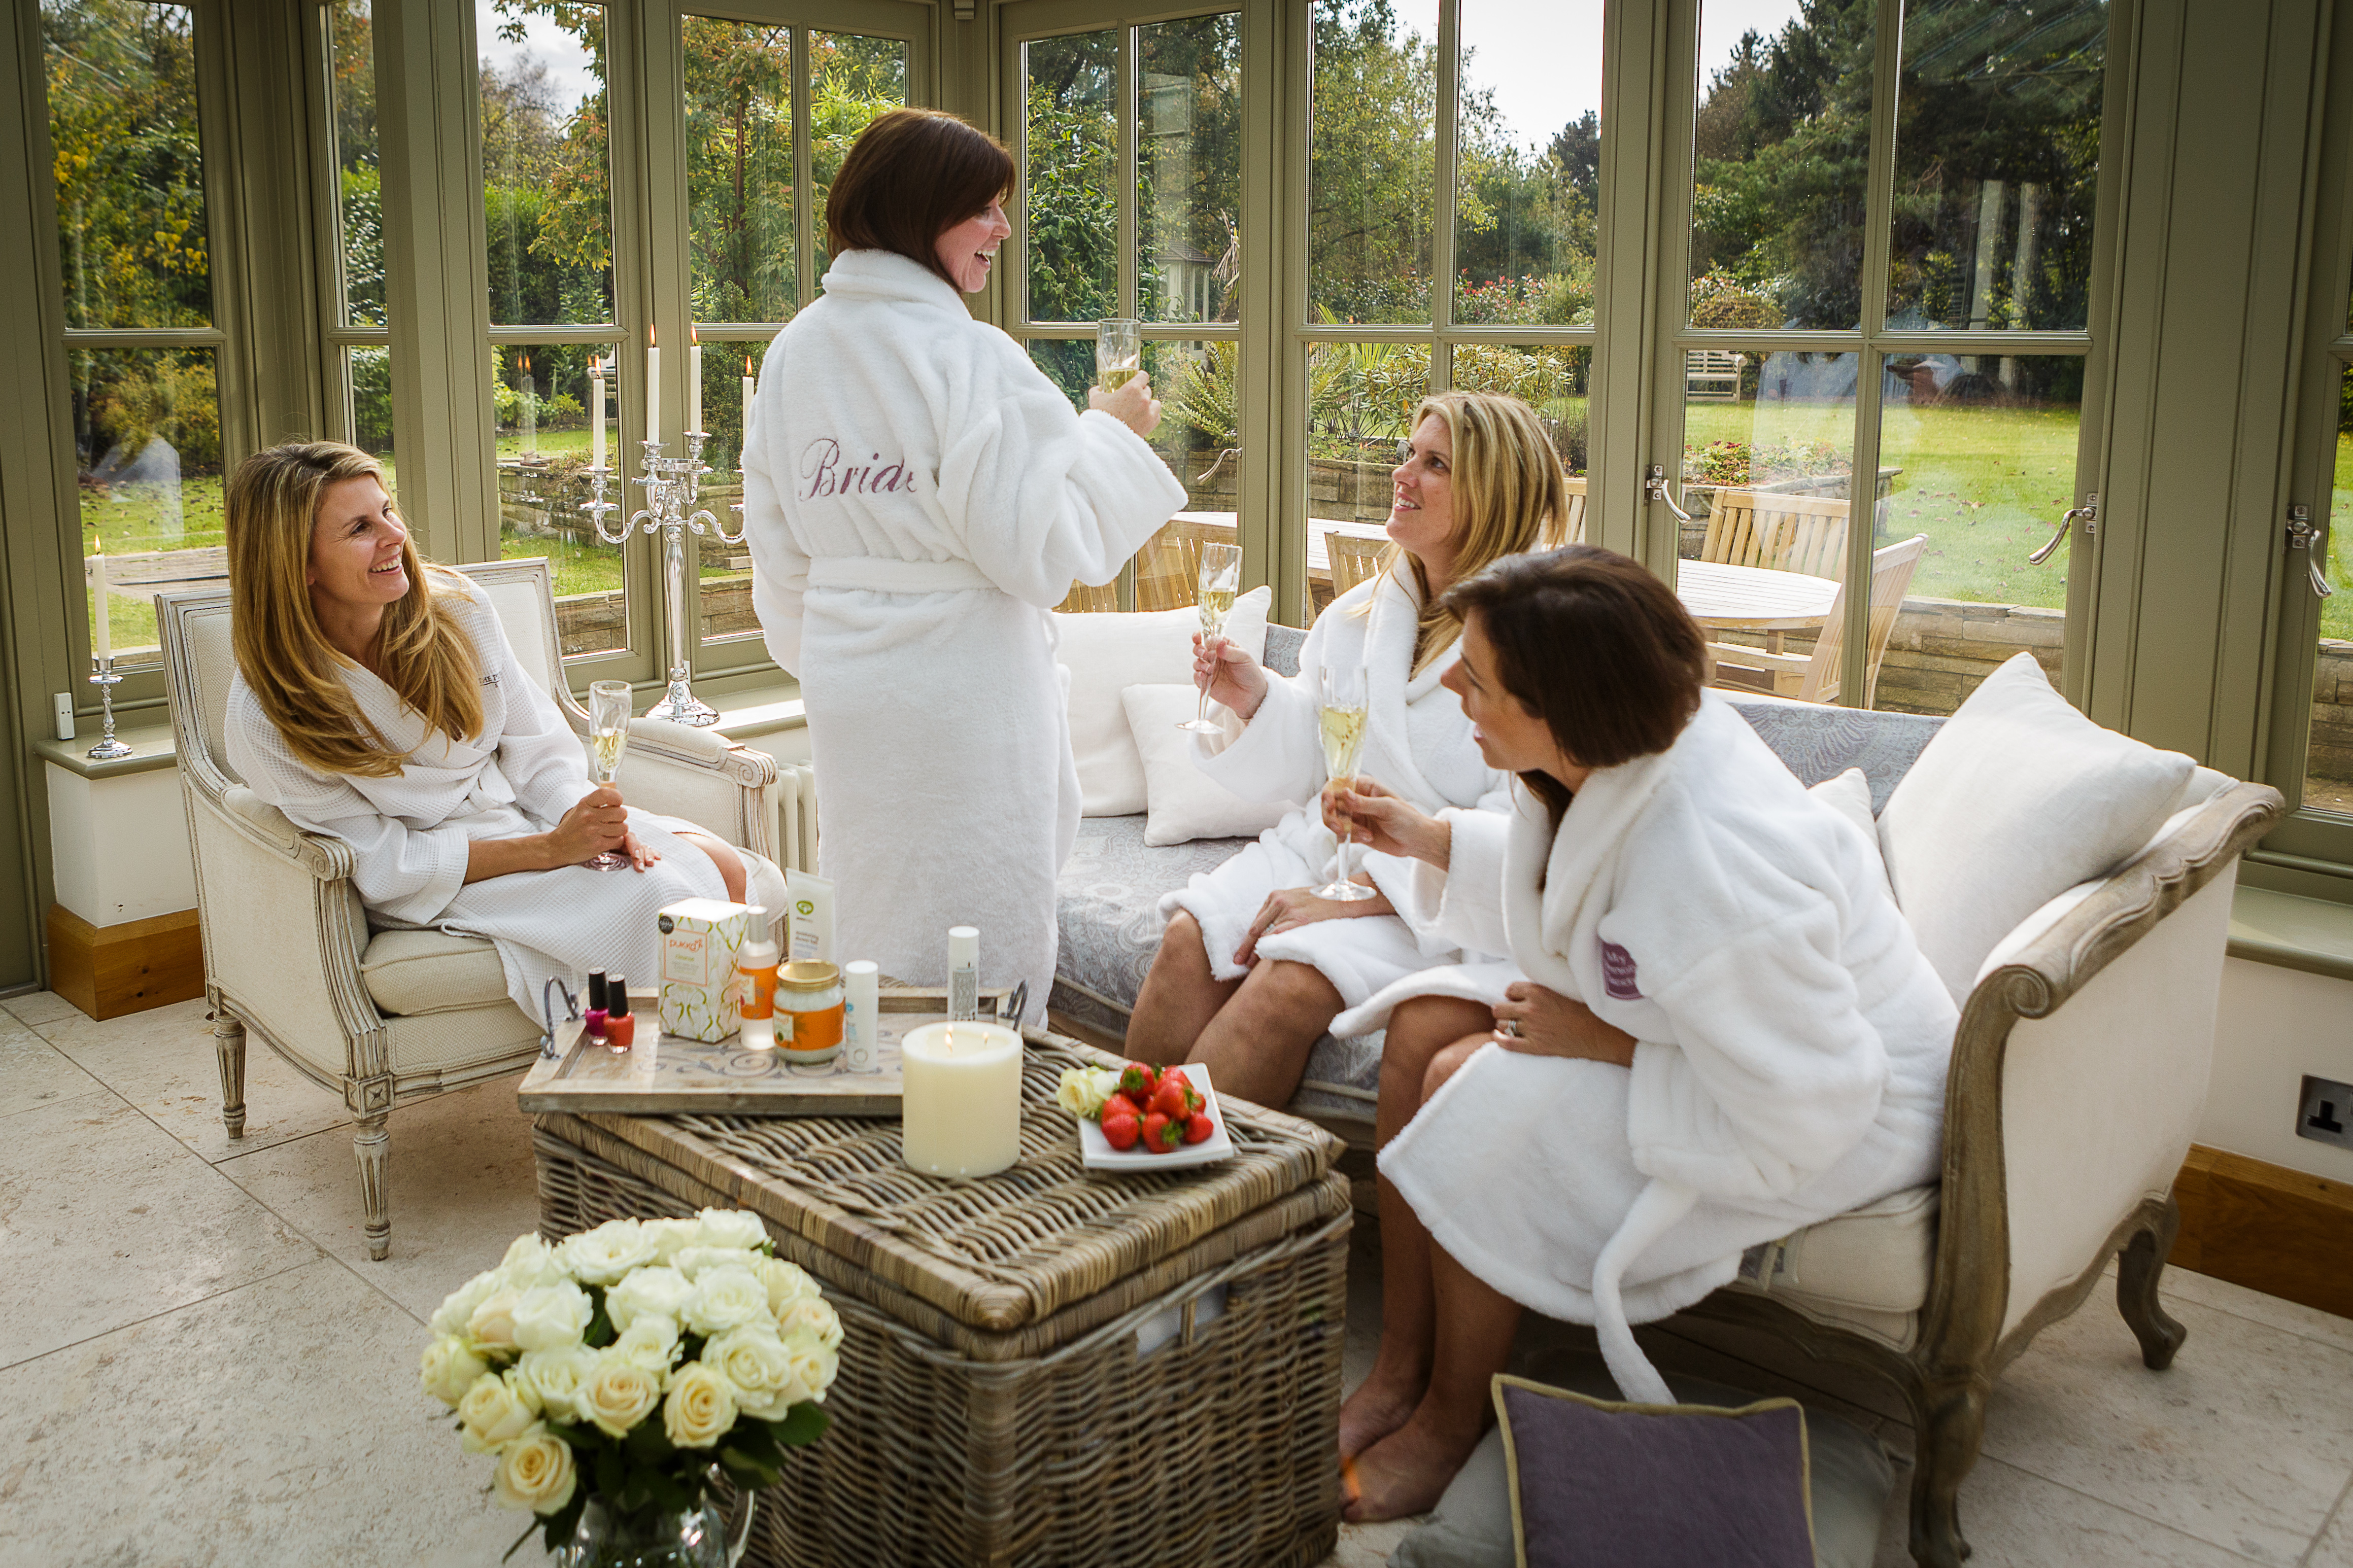 Pampering robes